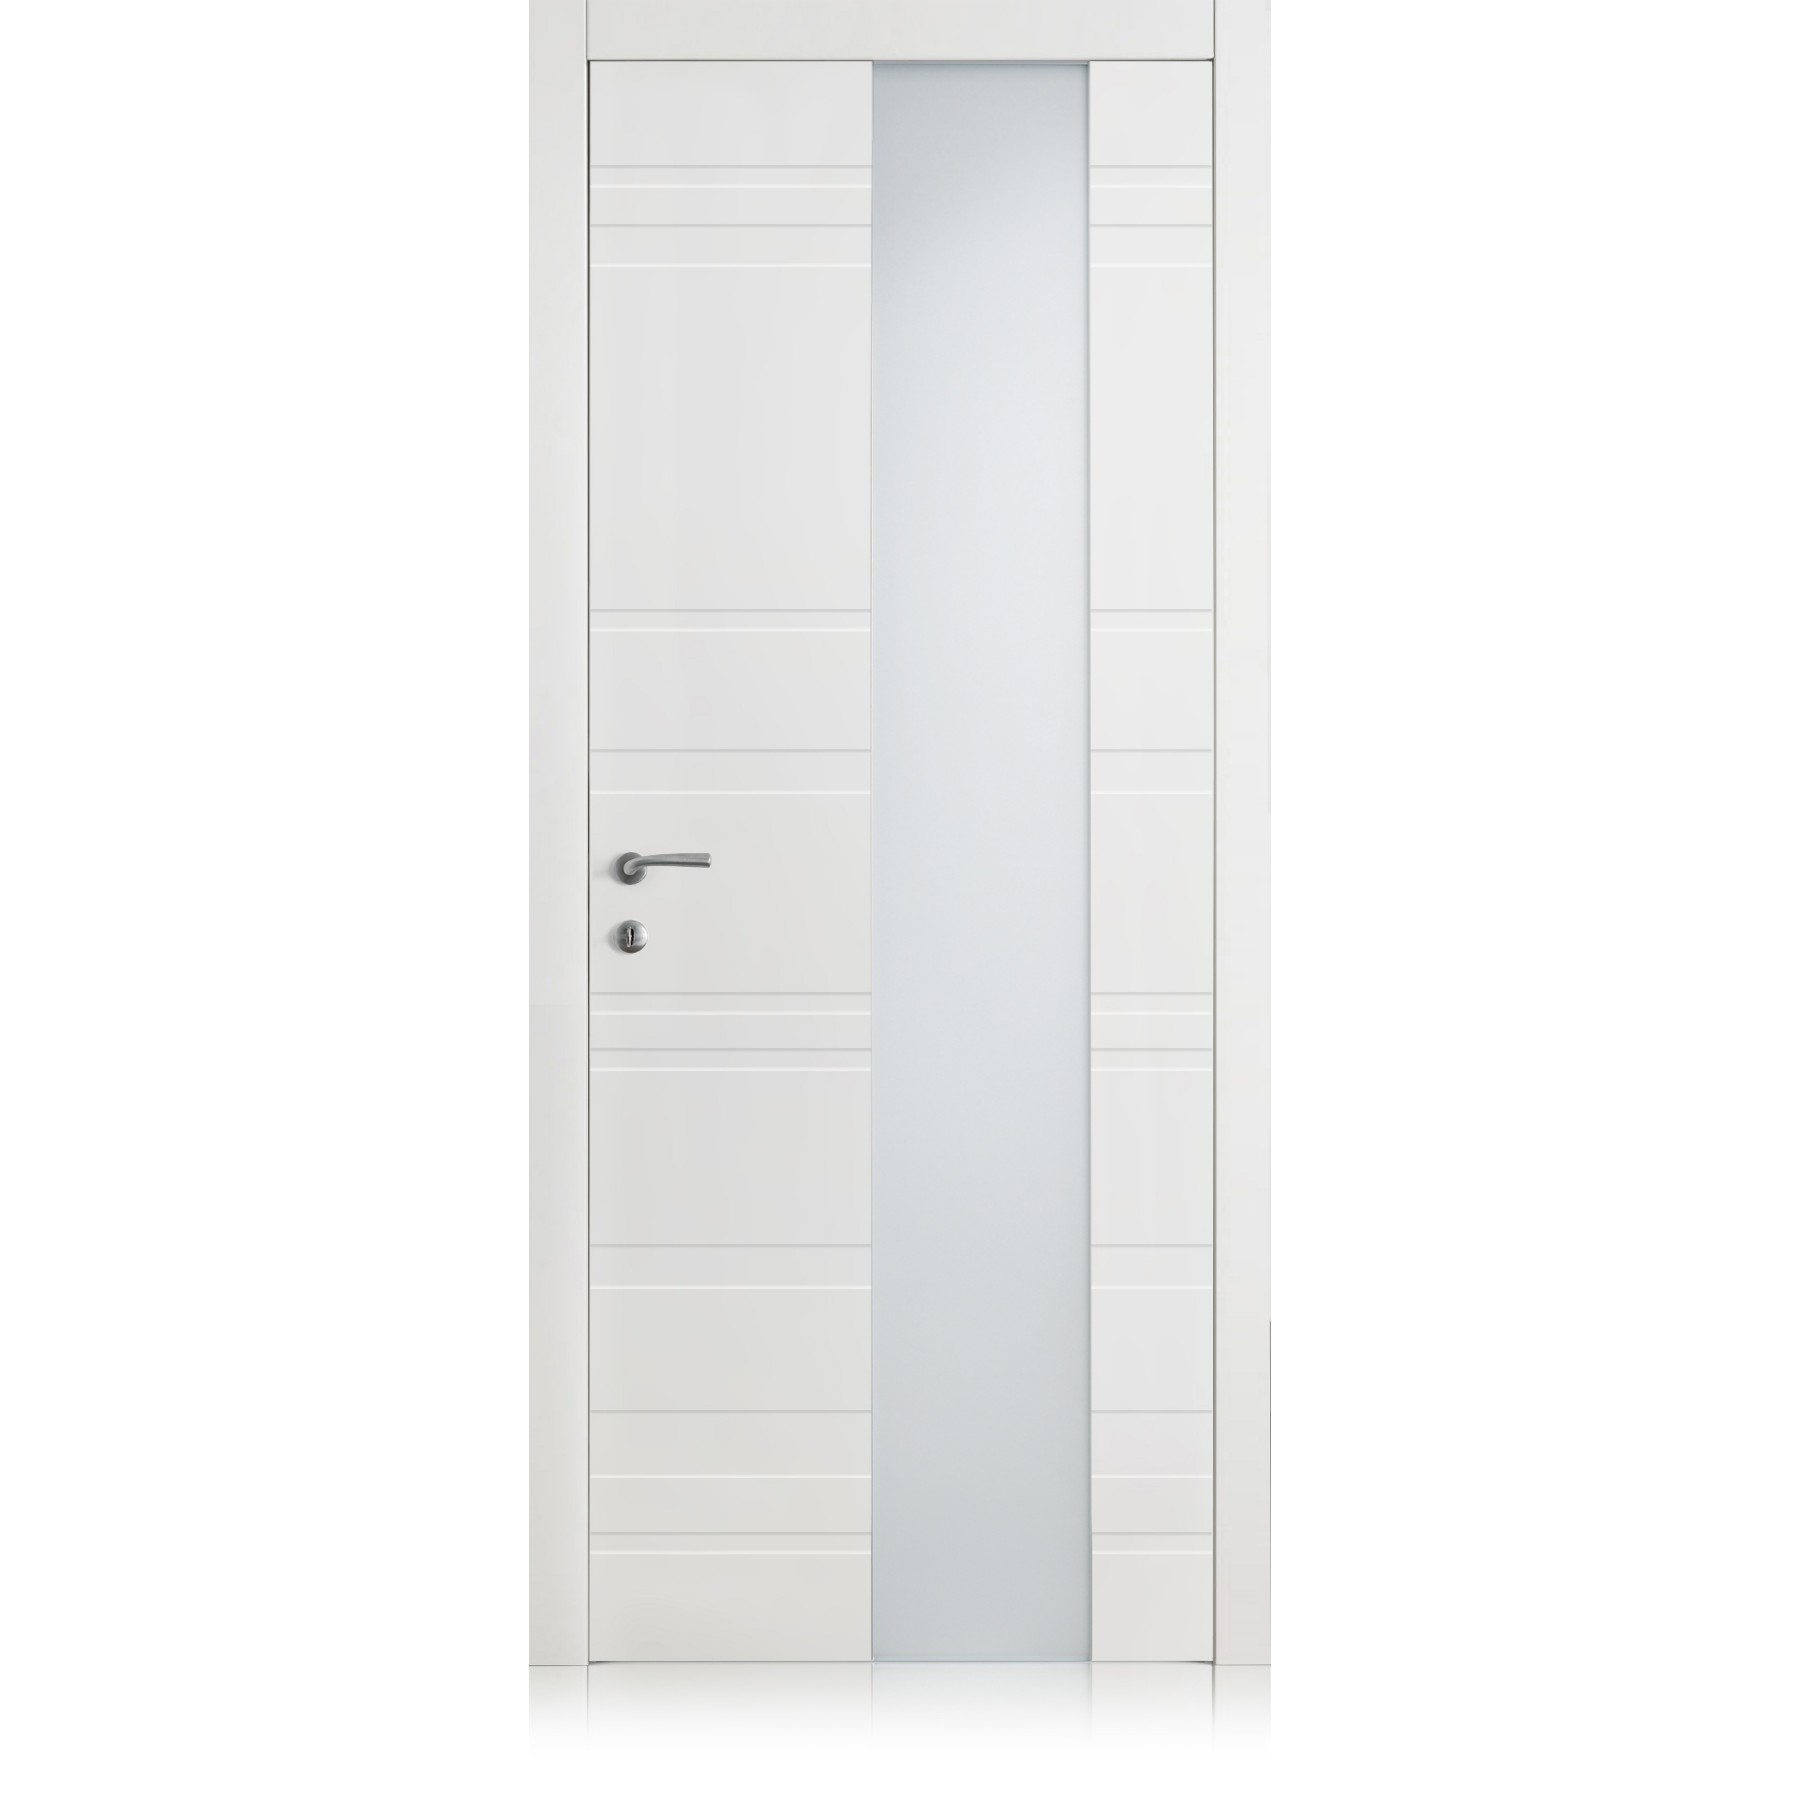 Yncisa Styla Vetro bianco optical door